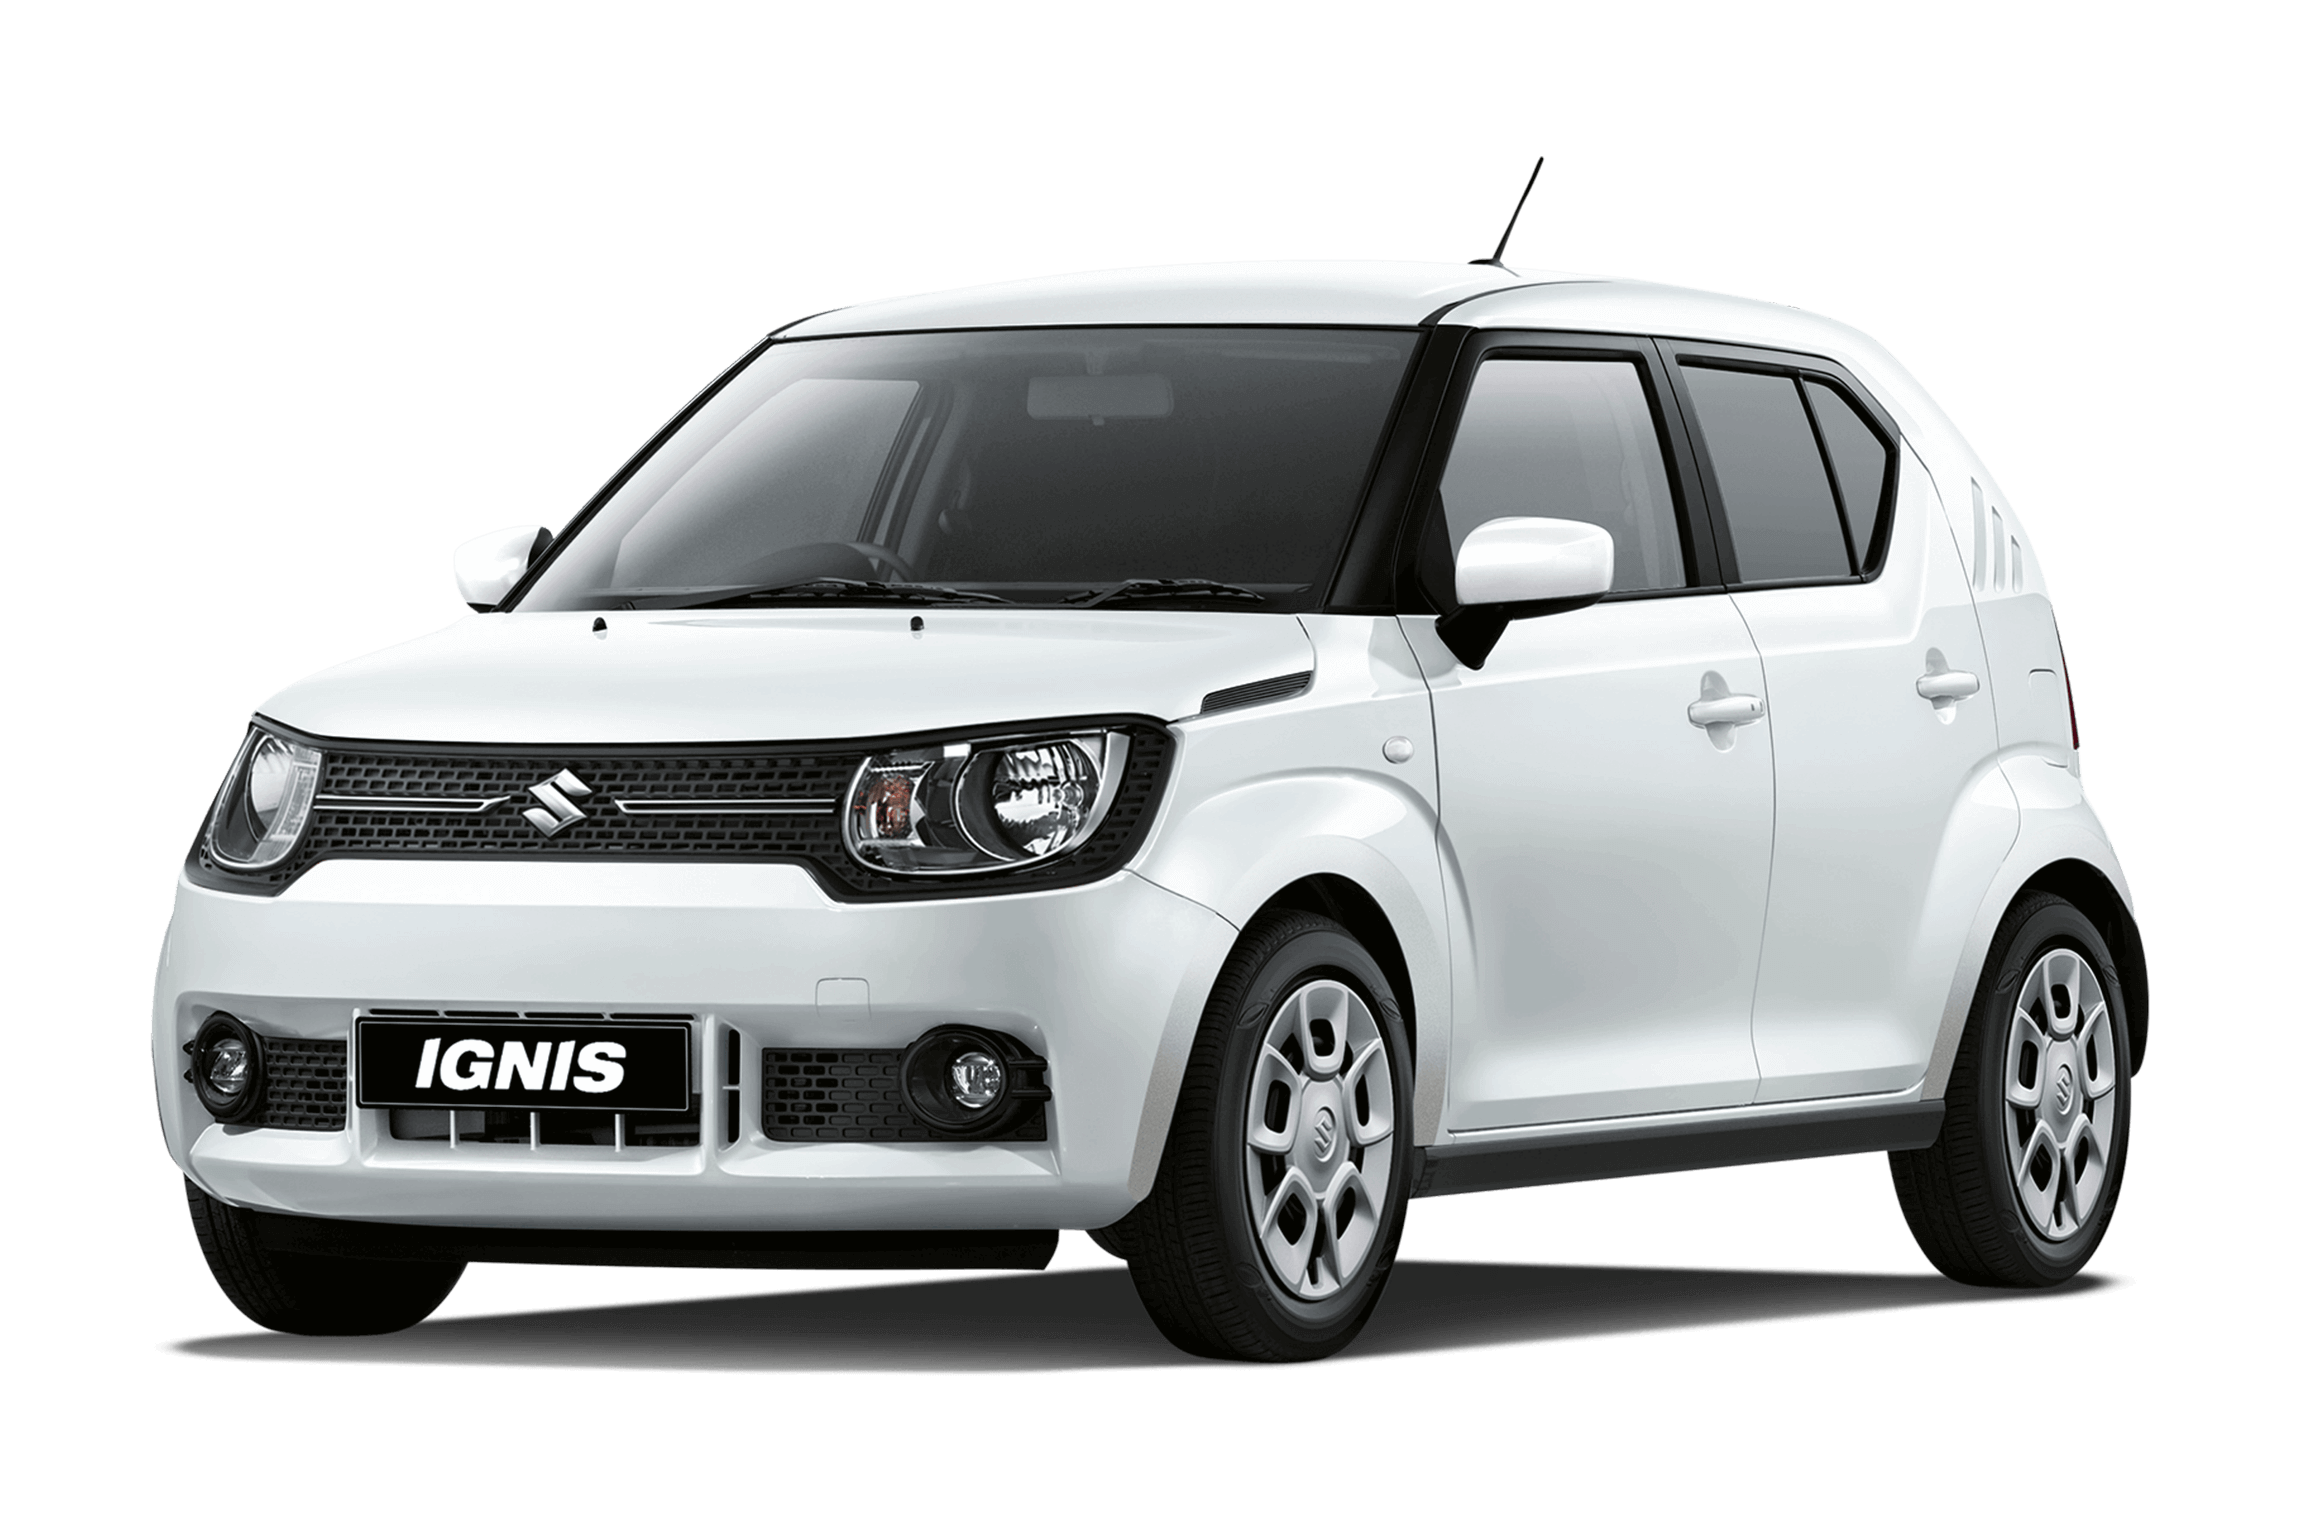 new suzuki ignis sz3 specs price suzuki cars uk. Black Bedroom Furniture Sets. Home Design Ideas